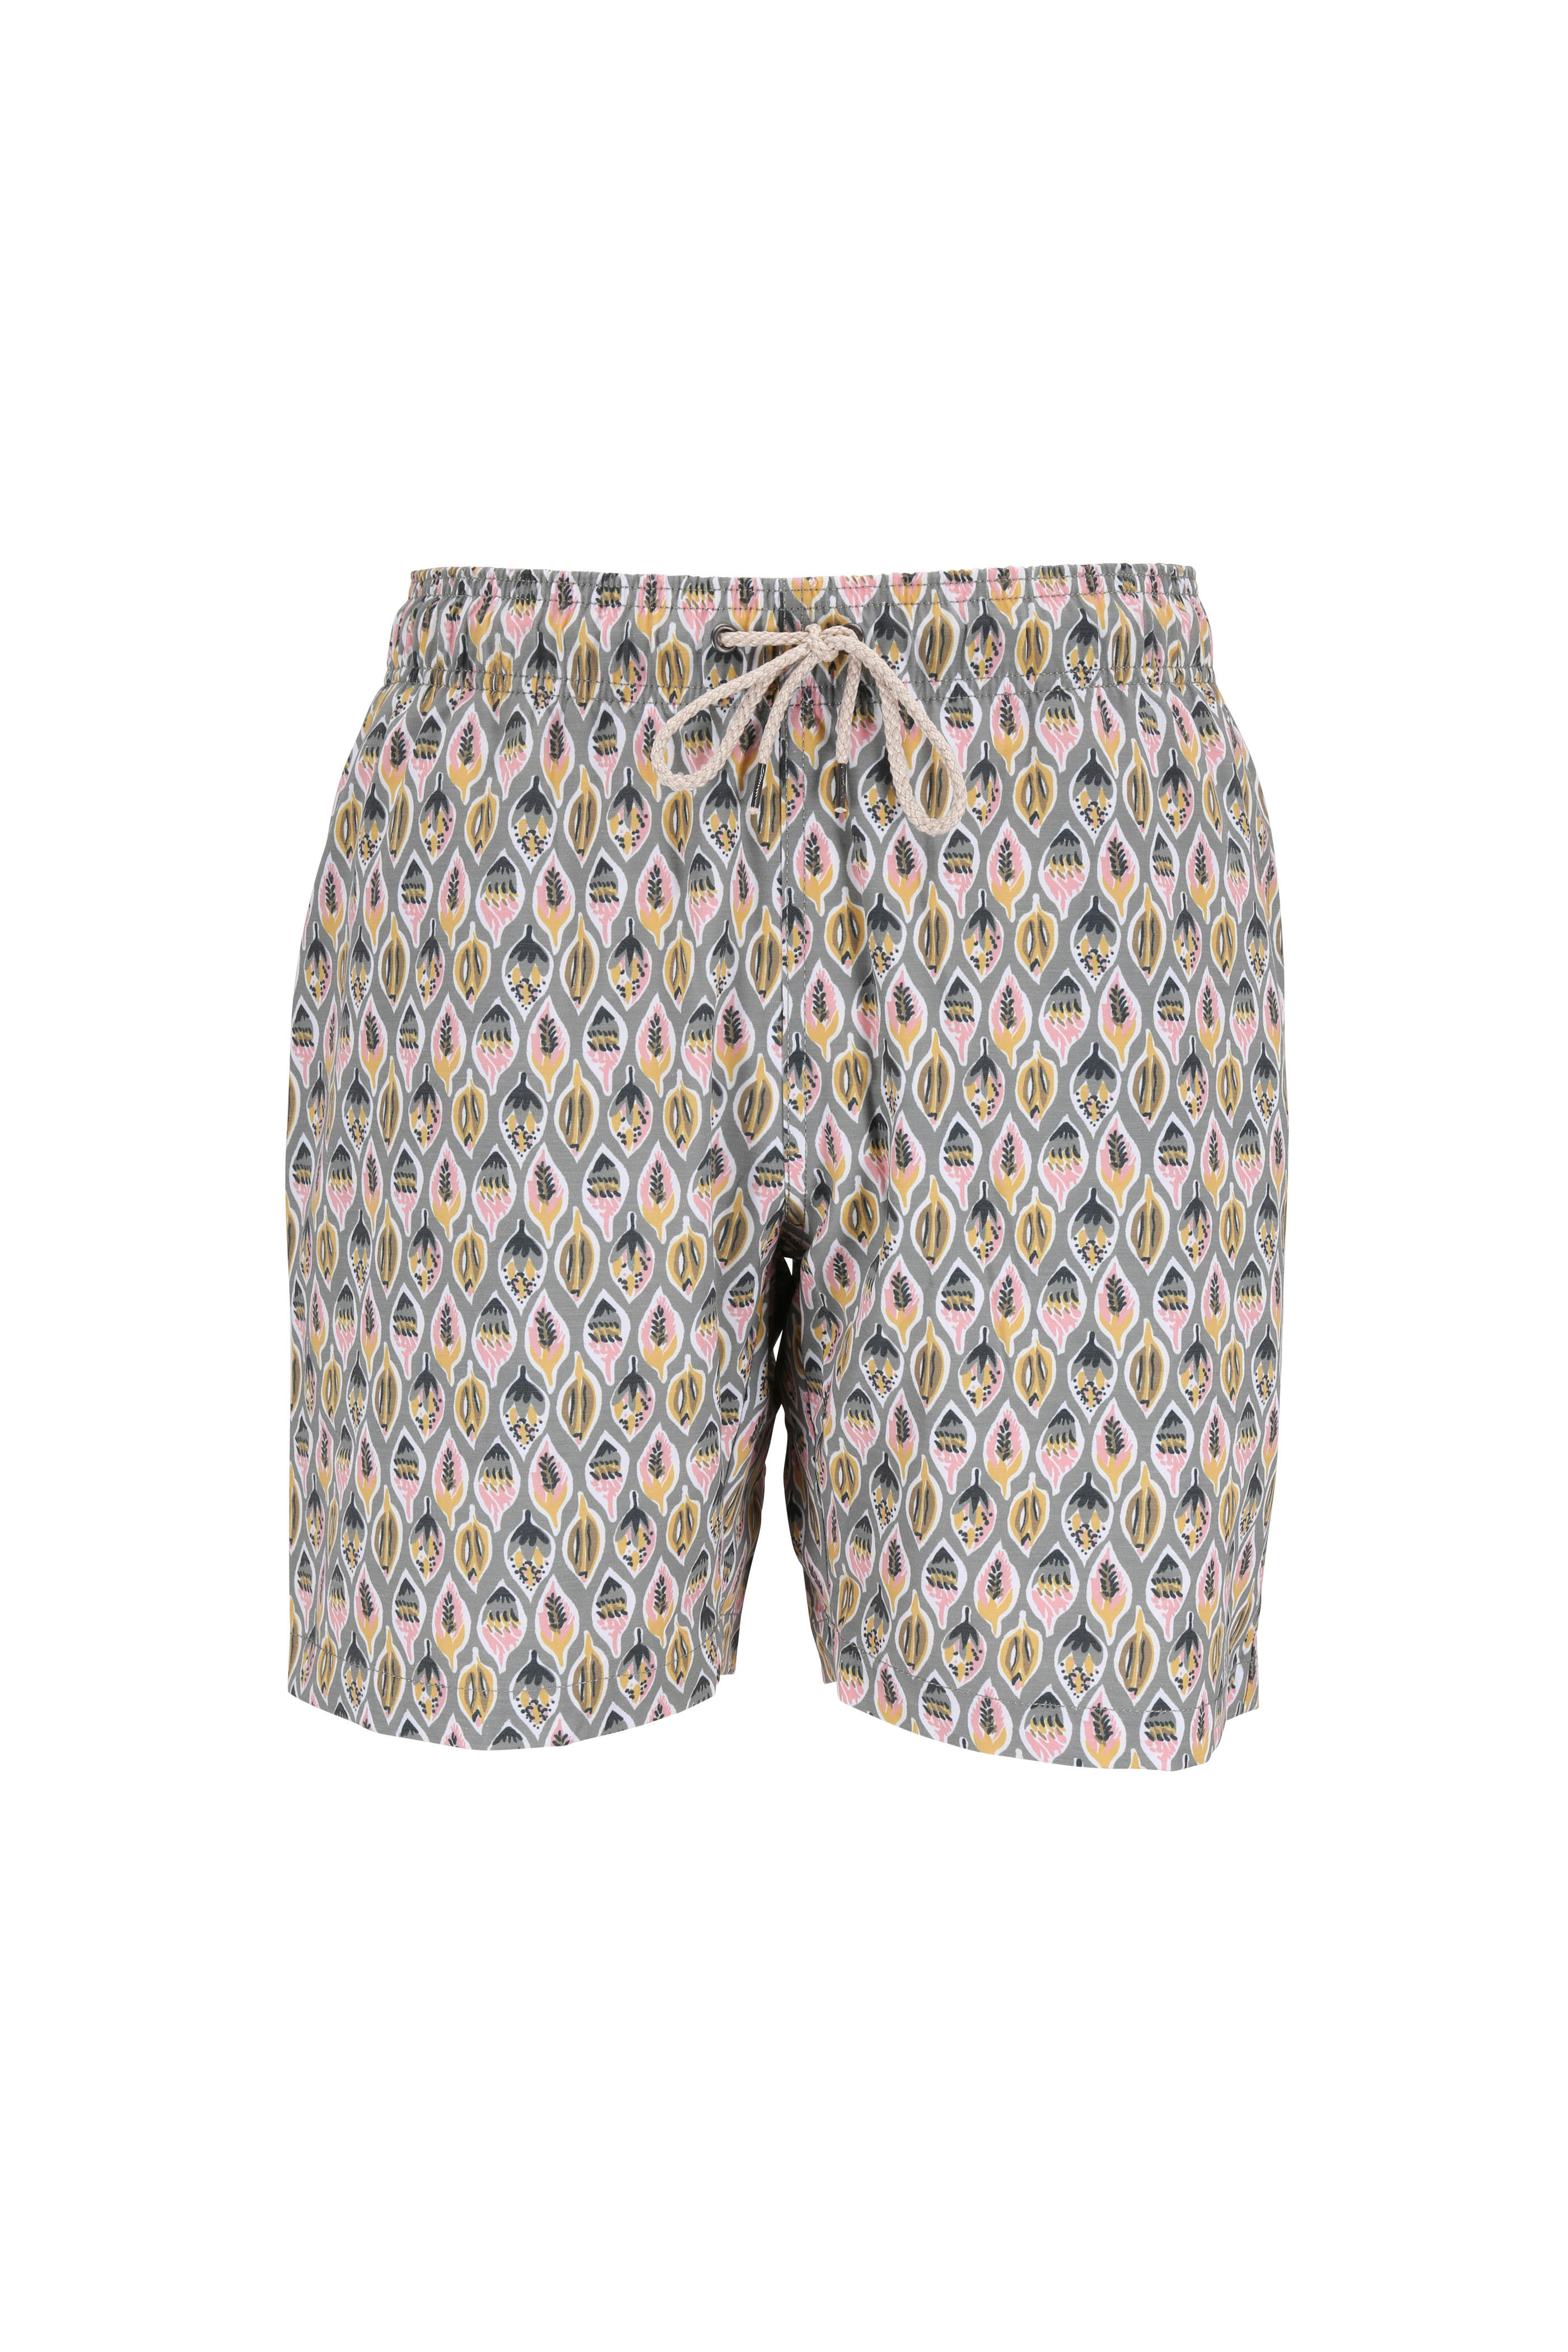 55422d2bf7 Faherty Brand - Light Green Leaf Printed Swim Trunks | Mitchell Stores